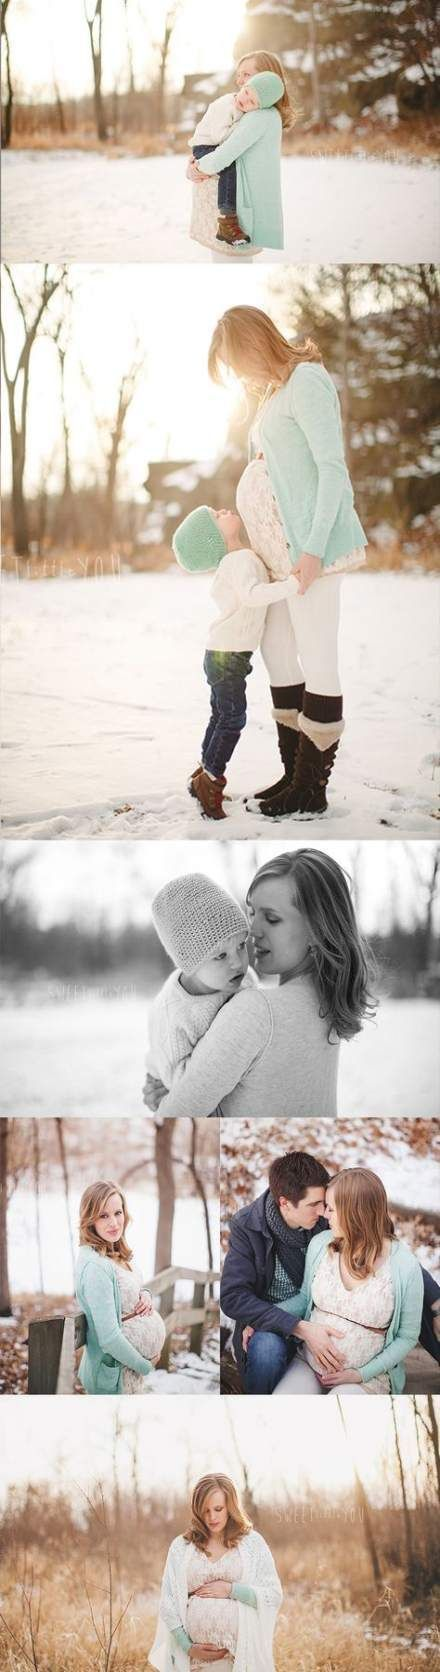 33+ Best ideas for photography ideas winter family #winterfamilyphotography 33+ Best ideas for photography ideas winter family #photography #winterfam... -  33+ Best ideas for photography ideas winter family #winterfamilyphotography 33+ Best ideas for photography ideas winter family #photography #winterfamilyphotography 33+ Best ideas for photography ideas winter family   You are in the right place about room black   Here we offer you the most beautiful pictures about the  room inspo  you are l #winterfamilyphotography